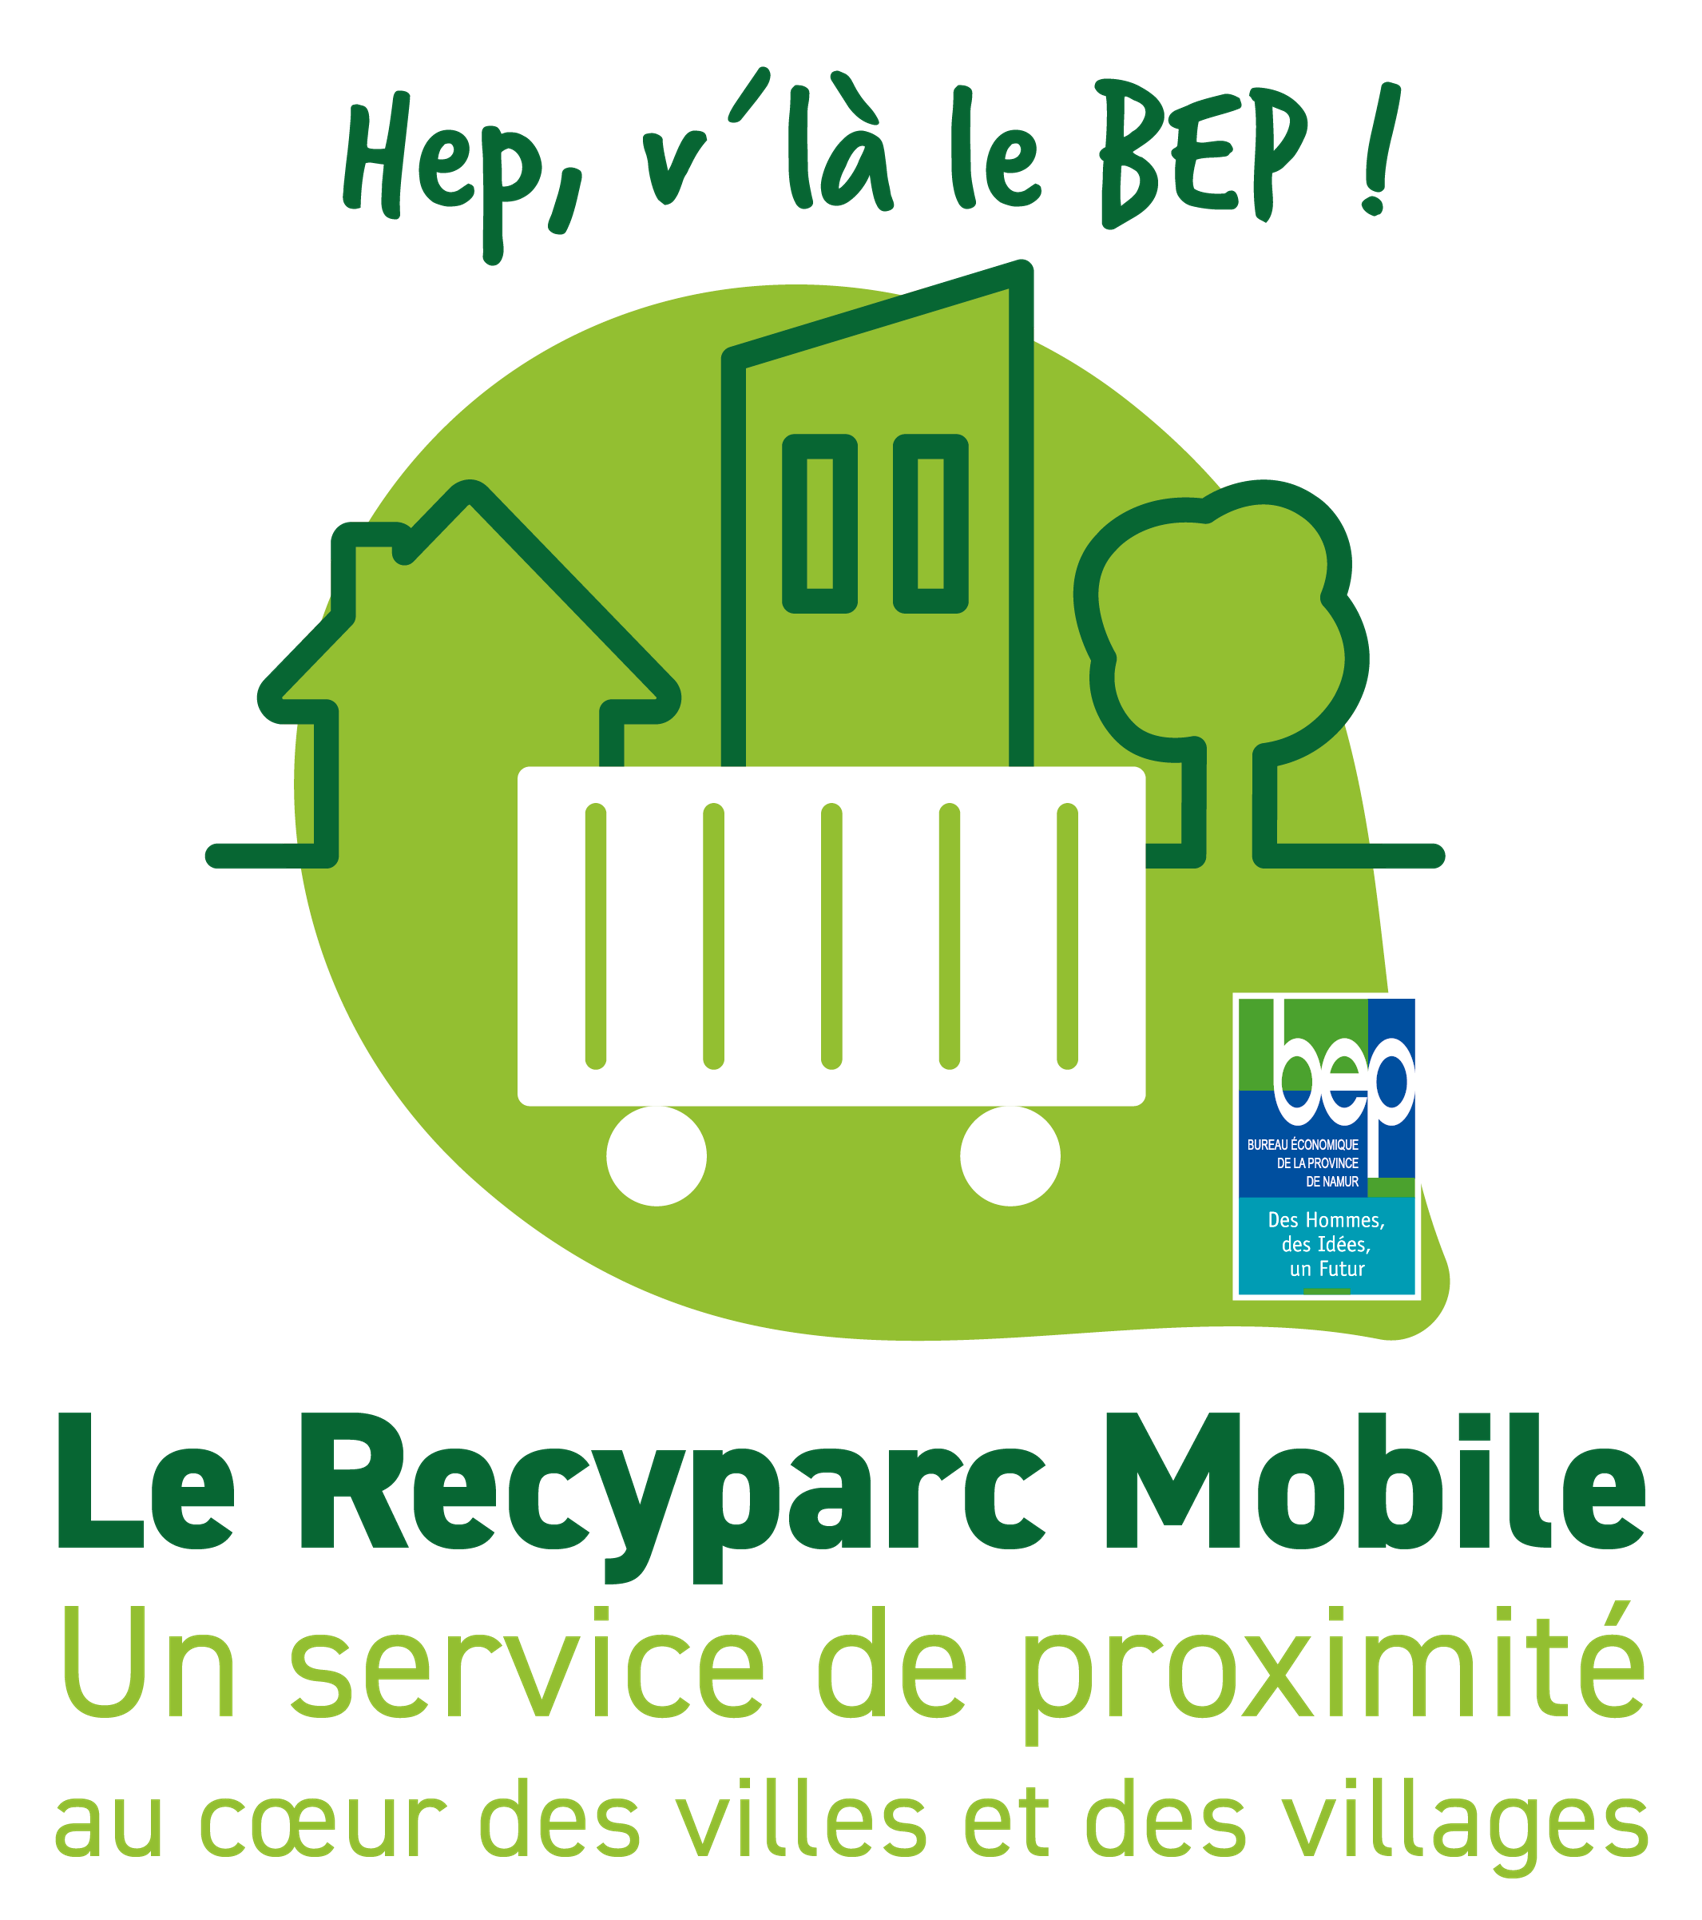 Recyparc Mobile